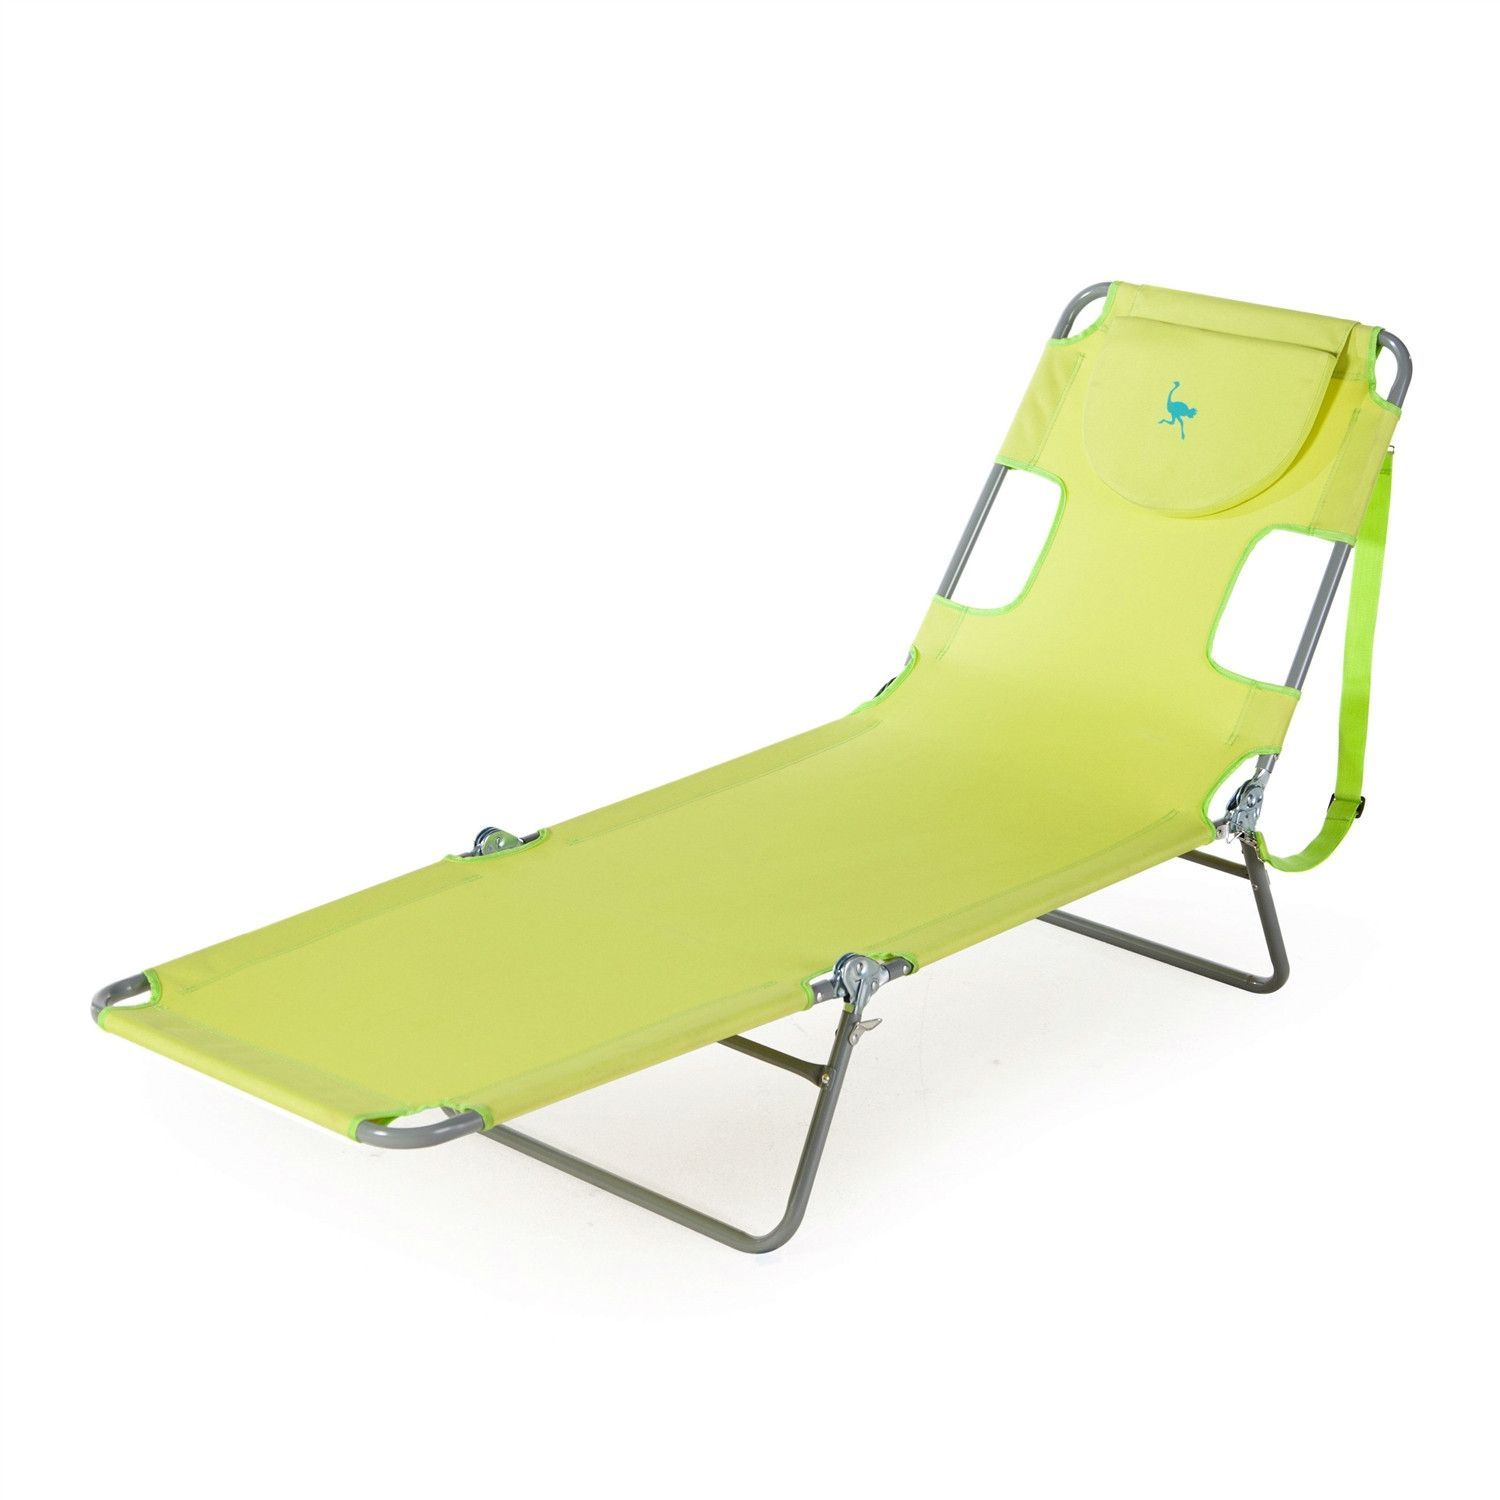 Green Chaise Lounge Beach Chair Recliner with Cotton Towel ... on green glider chair, green accent chair, green living room chair, green club chair, green wicker chair, green recliner chair, green vanity chair, lime green chair, green office chair, adirondack lounge chair, green swing chair, green dining chair, green leather chair, green bar chair, green hammock chair, teal lounge chair, green arm chair, green egg chair, danish lounge chair, contour lounge chair,